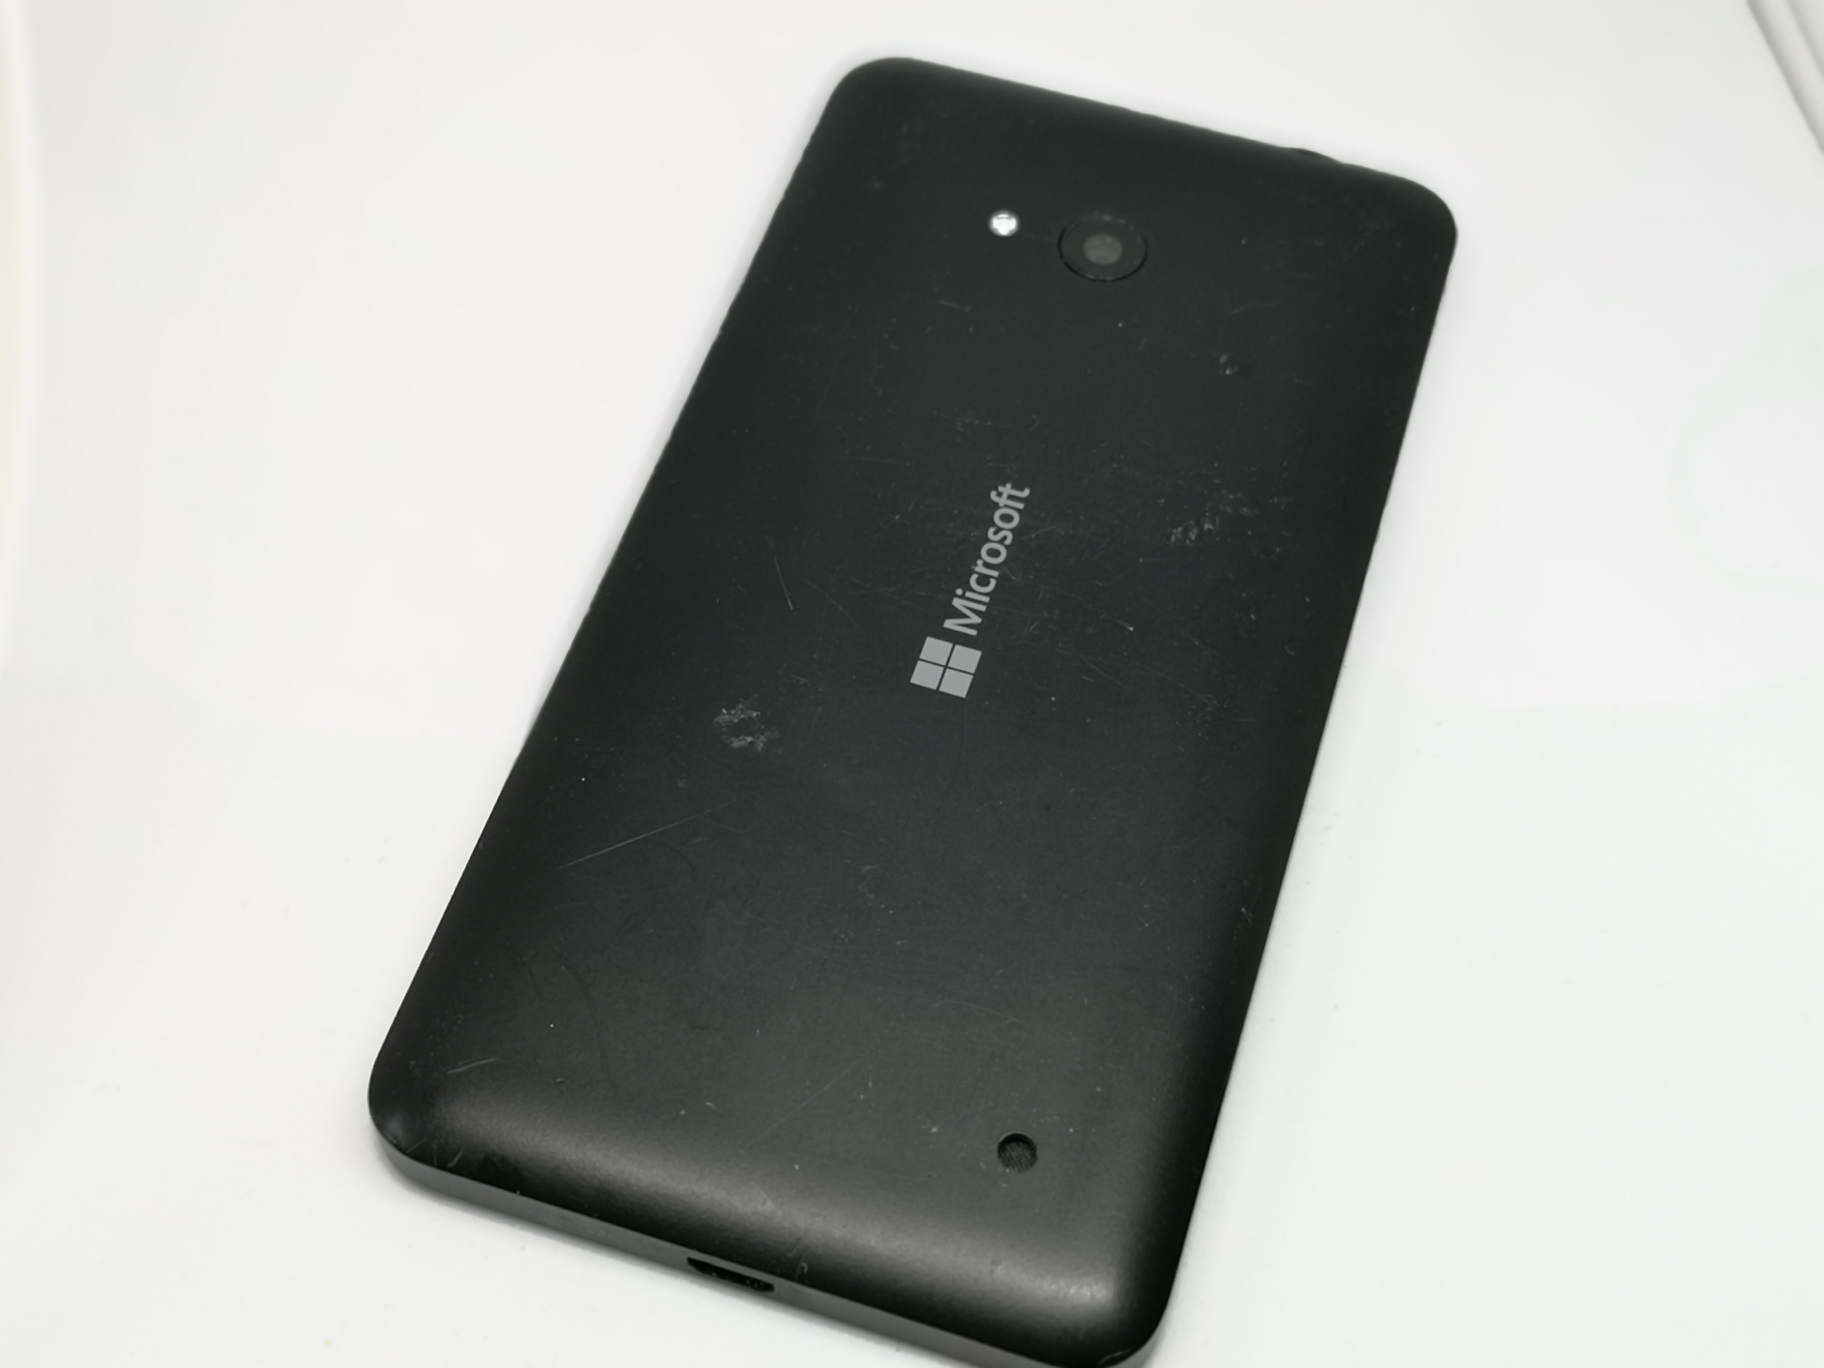 Microsoft Lumia 640 Review: 5 Inch Mobile Phone